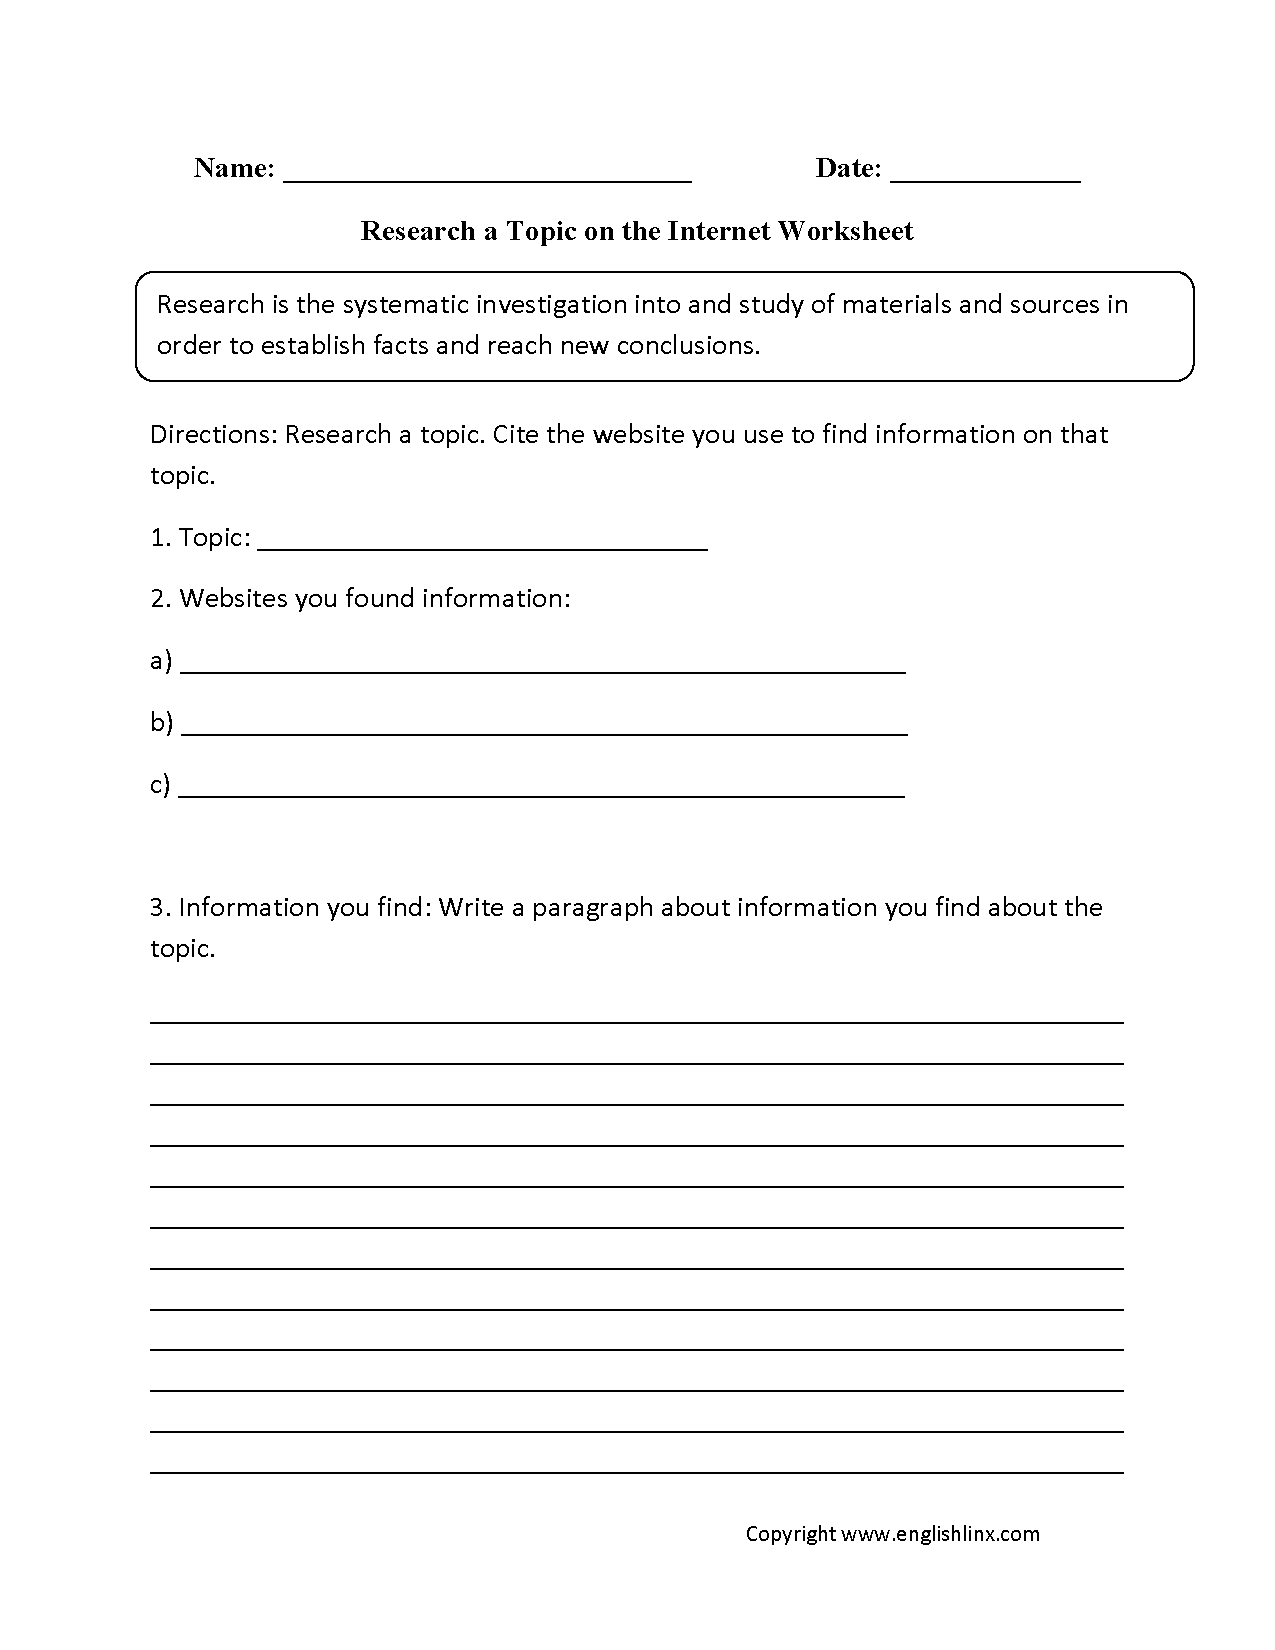 Aldiablosus  Wonderful Englishlinxcom  Research Worksheets With Lovely On The Internet Worksheet With Awesome Slope Of Lines Worksheet Also Conjunctions Worksheet Rd Grade In Addition Regrouping Addition Worksheet And Writing Complex Sentences Worksheets As Well As Middle Sound Worksheet Additionally Root Word Practice Worksheet From Englishlinxcom With Aldiablosus  Lovely Englishlinxcom  Research Worksheets With Awesome On The Internet Worksheet And Wonderful Slope Of Lines Worksheet Also Conjunctions Worksheet Rd Grade In Addition Regrouping Addition Worksheet From Englishlinxcom